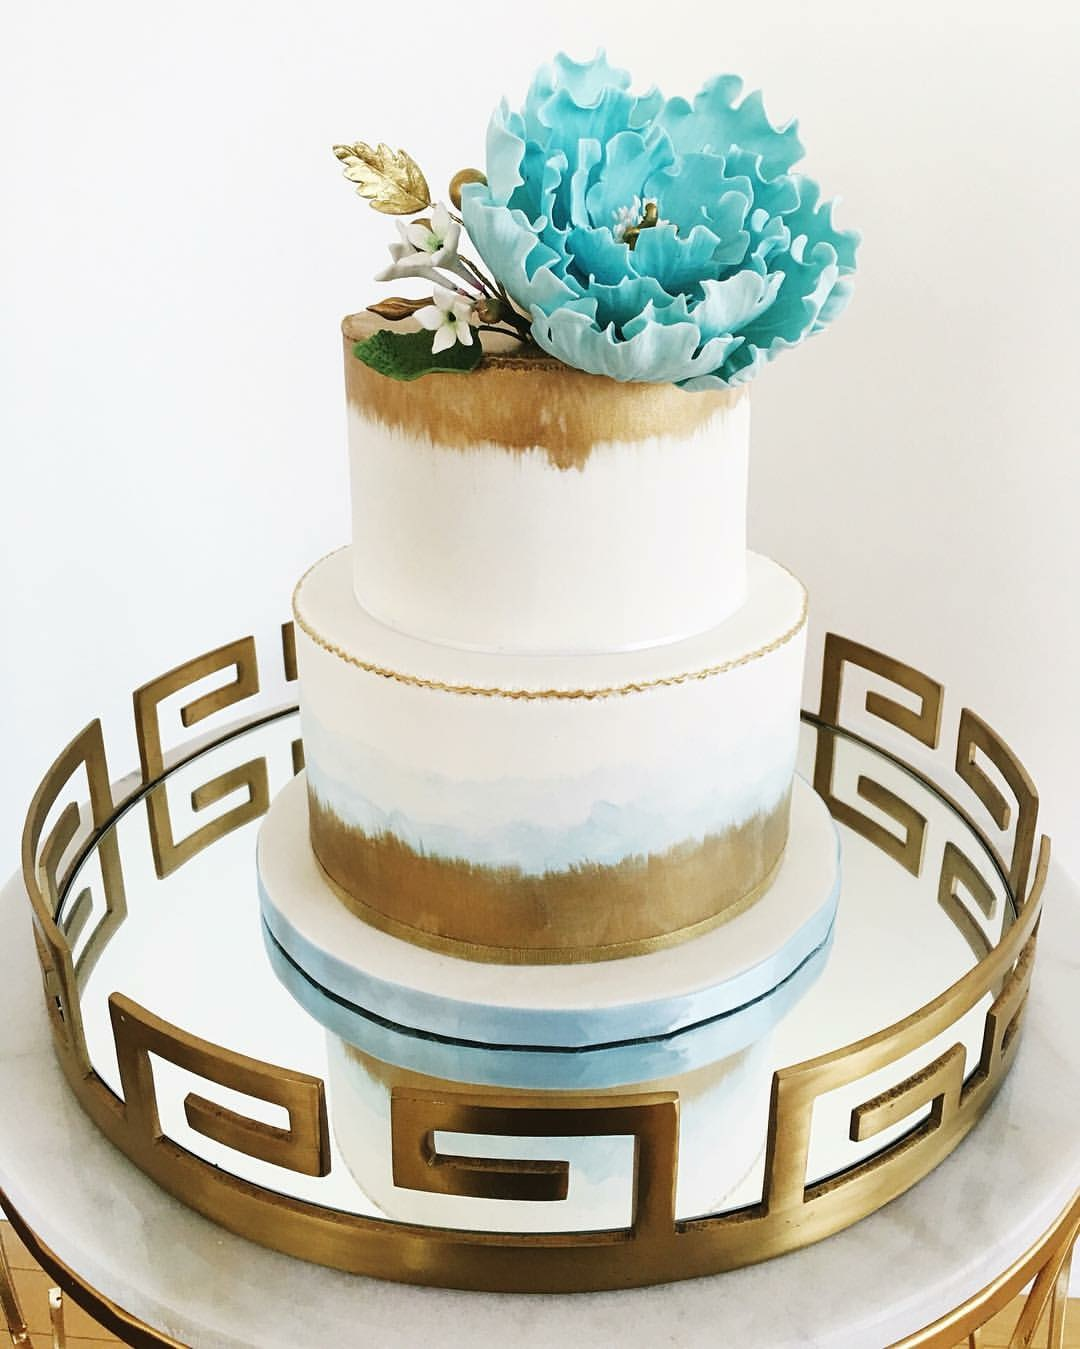 White and gold wedding cake with blue sugar flower